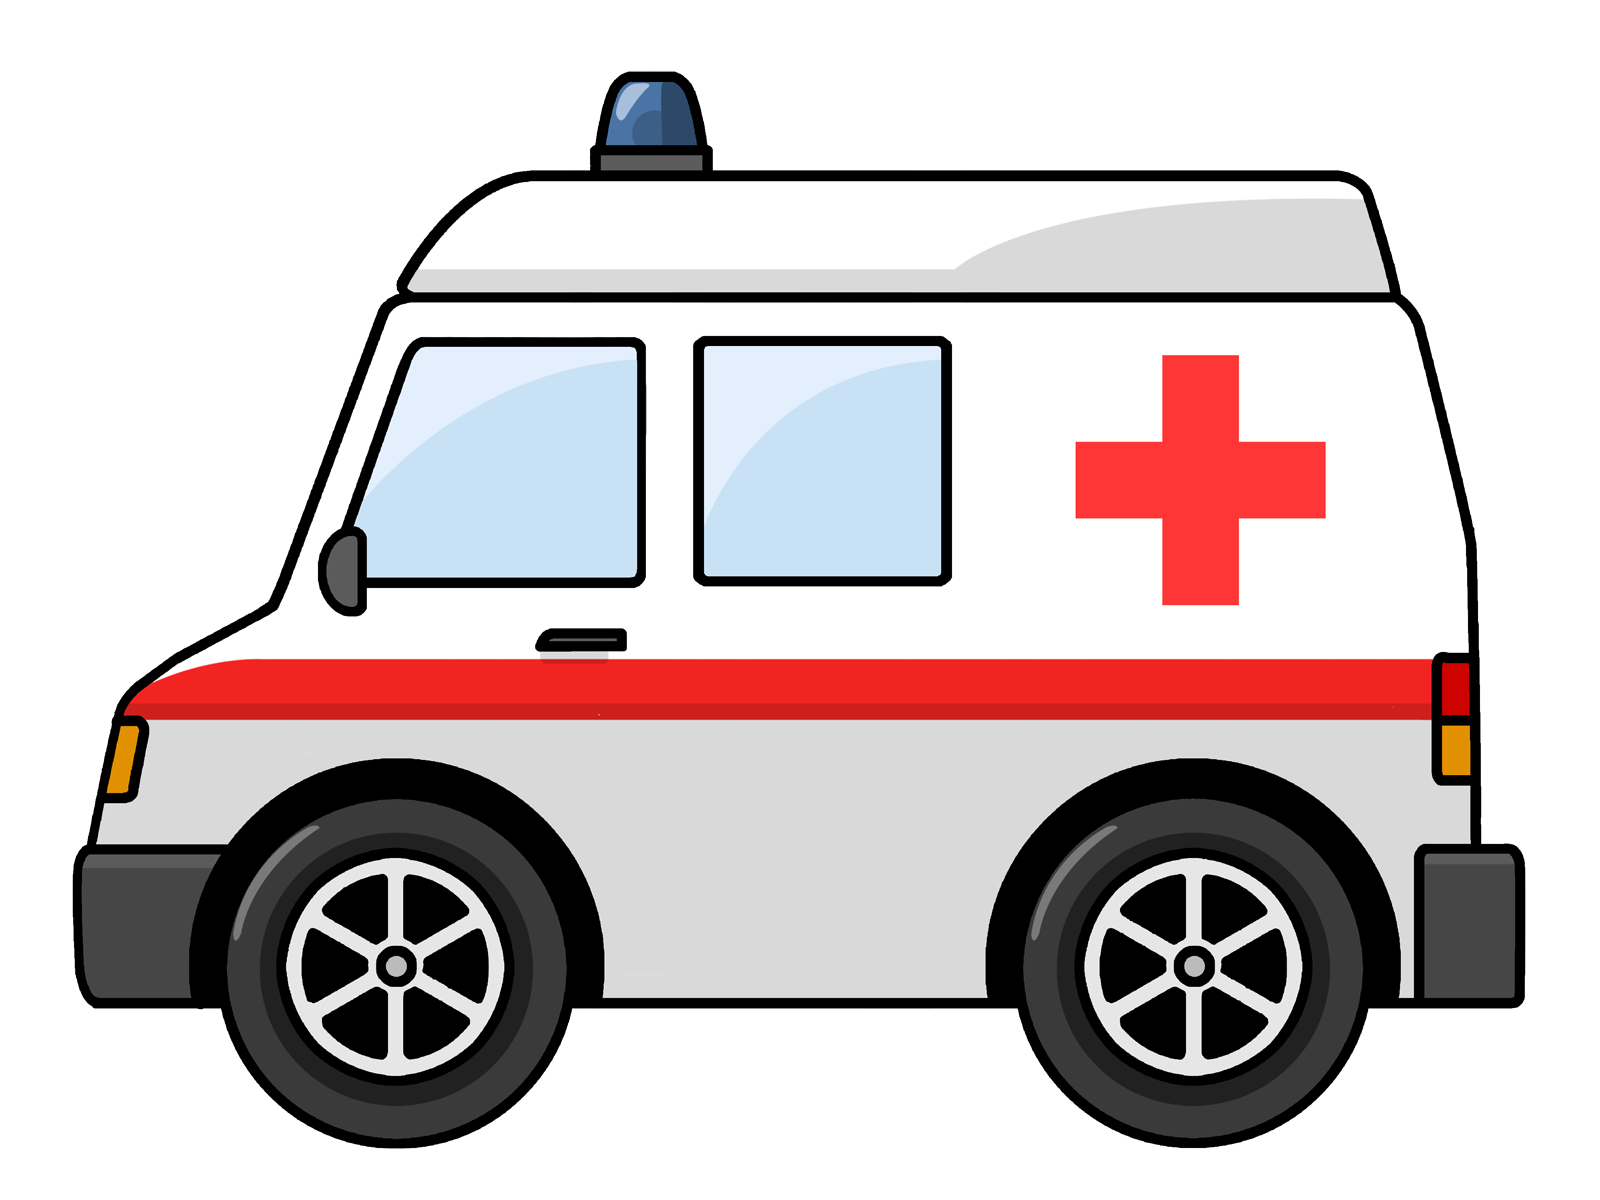 ambulance seeing an ambulance is very unlucky unless you pinch rh pinterest com ambulance clipart free ambulance clipart png